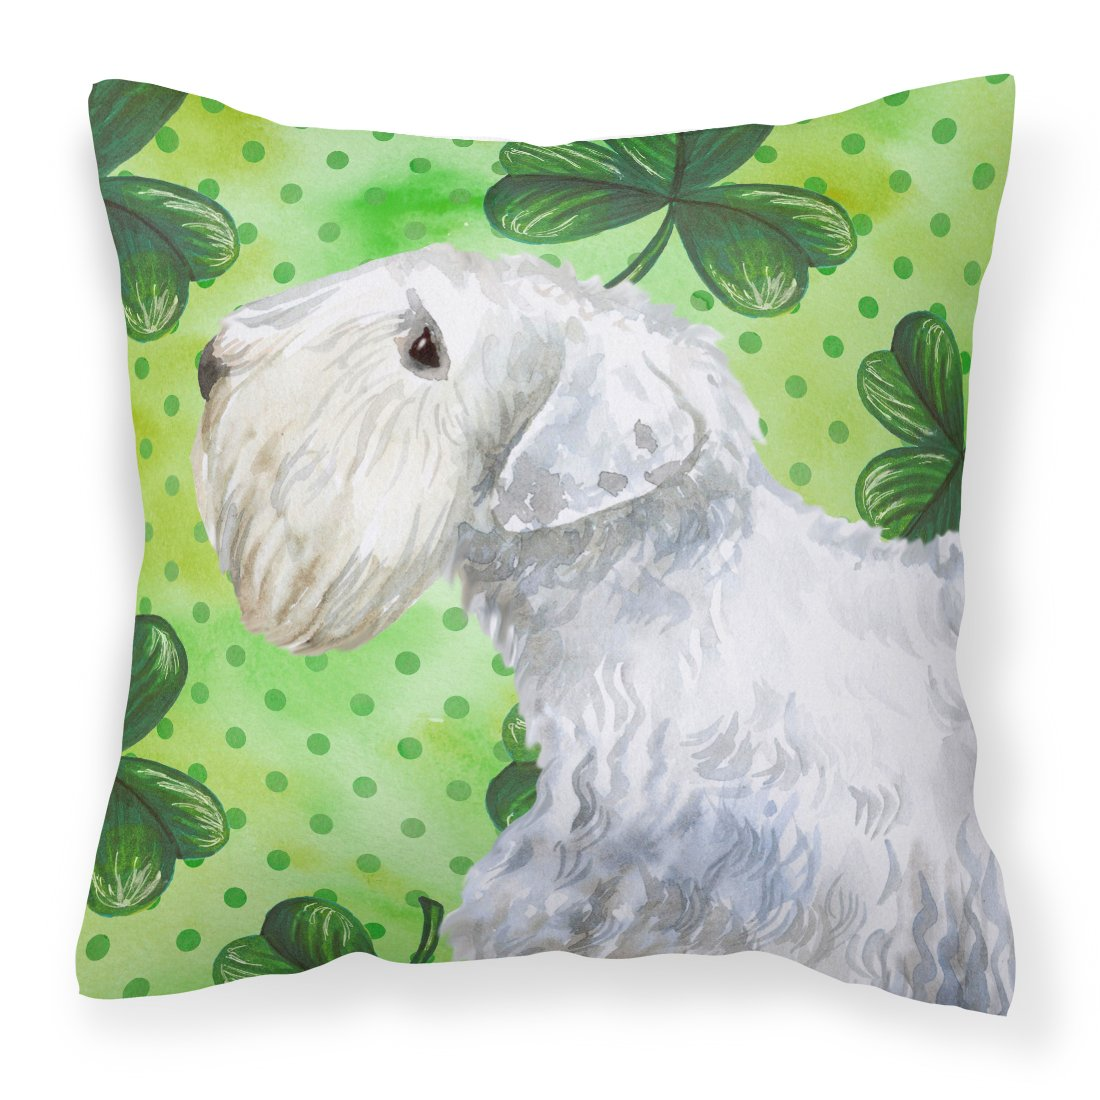 Buy this Sealyham Terrier St Patrick's Fabric Decorative Pillow BB9858PW1818